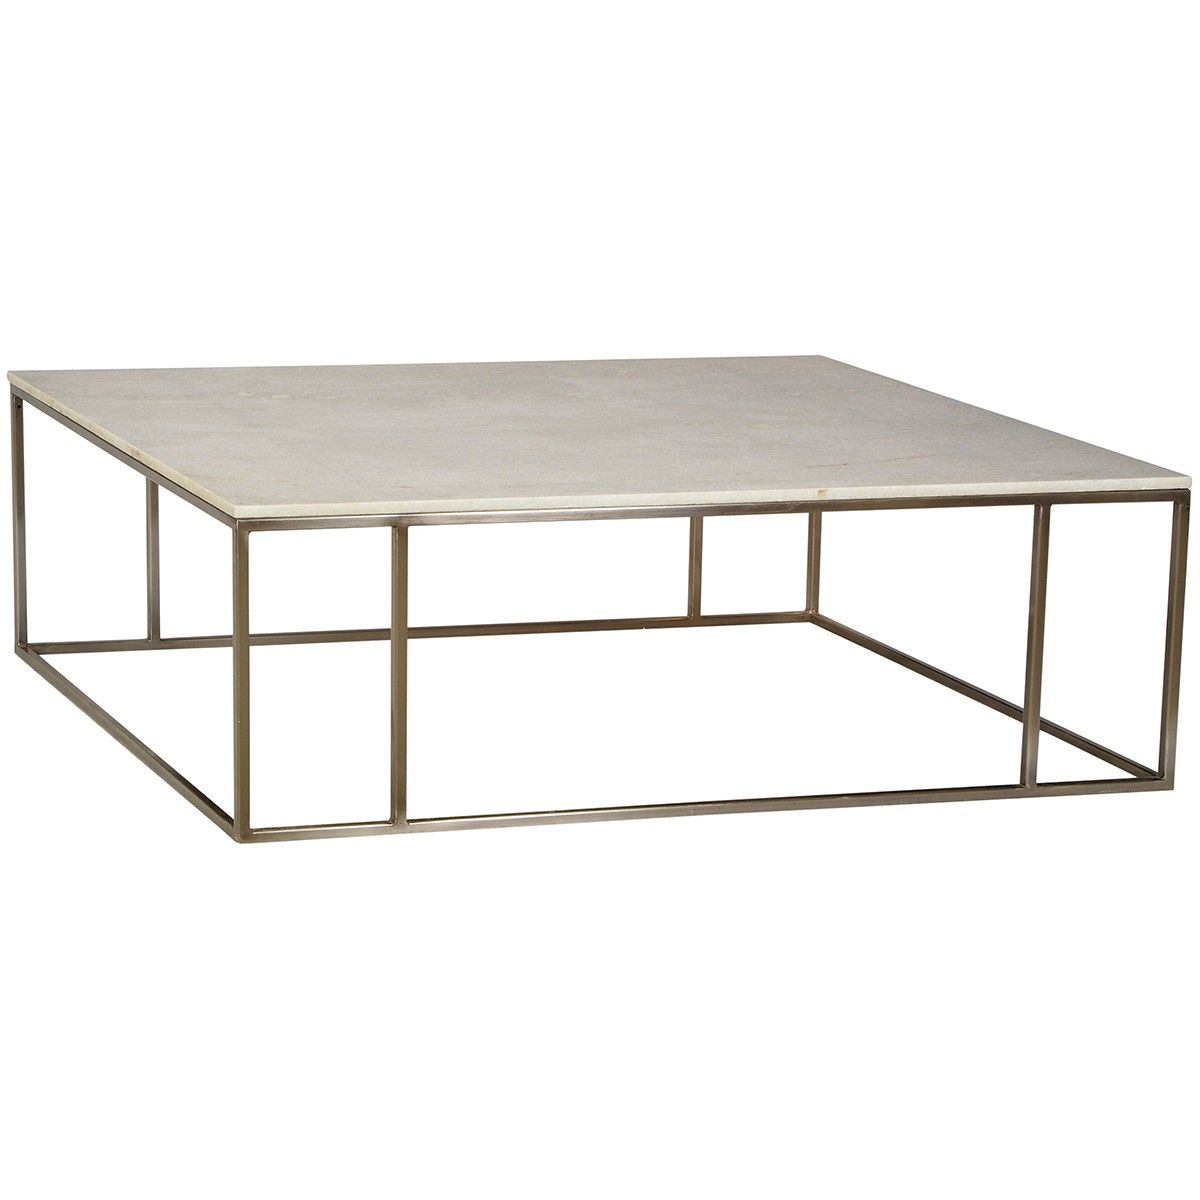 Dovetail sinclair coffee table large square coffee table